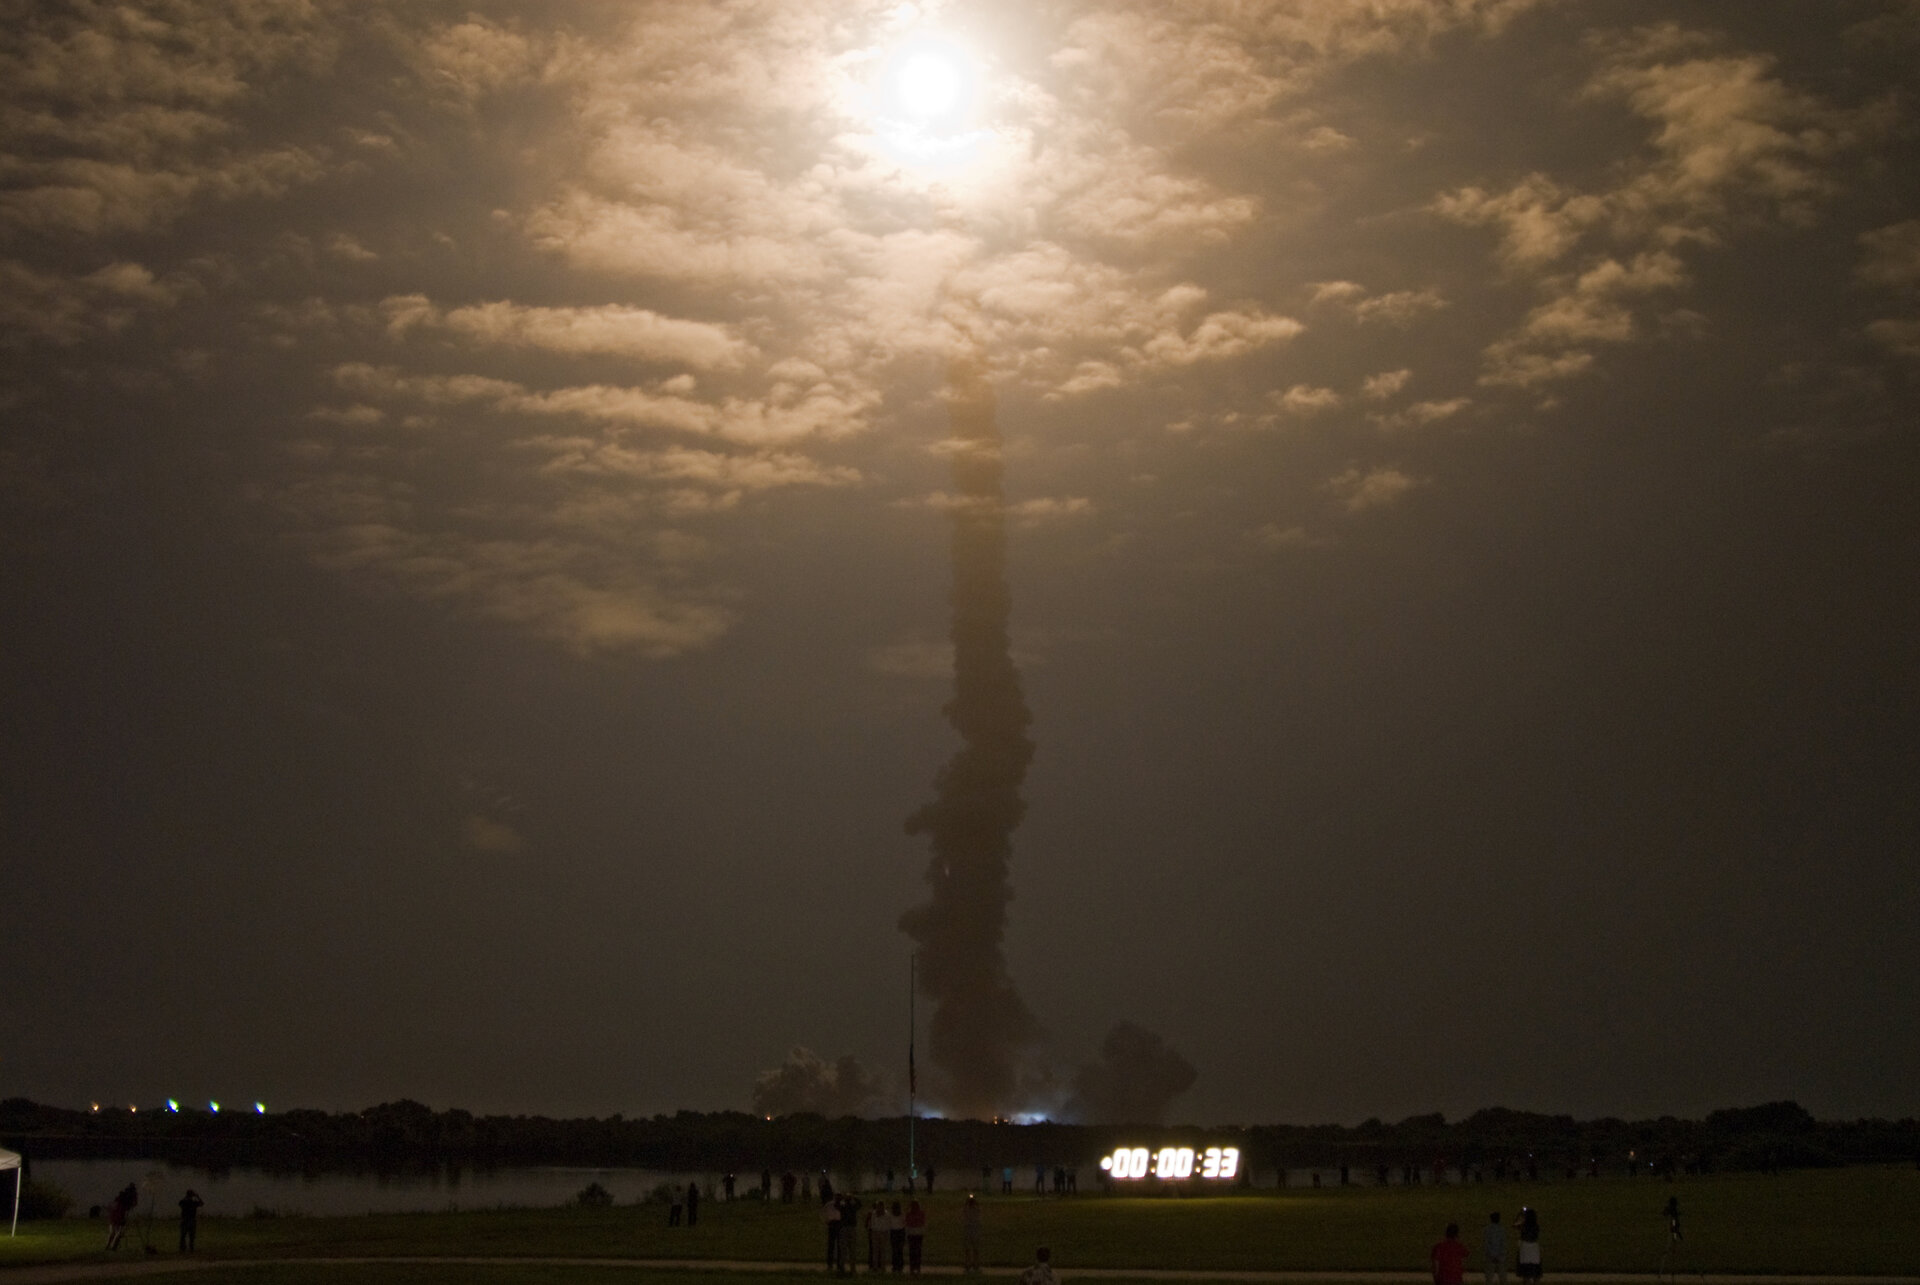 Launch of Space Shuttle Discovery on the STS-128 mission